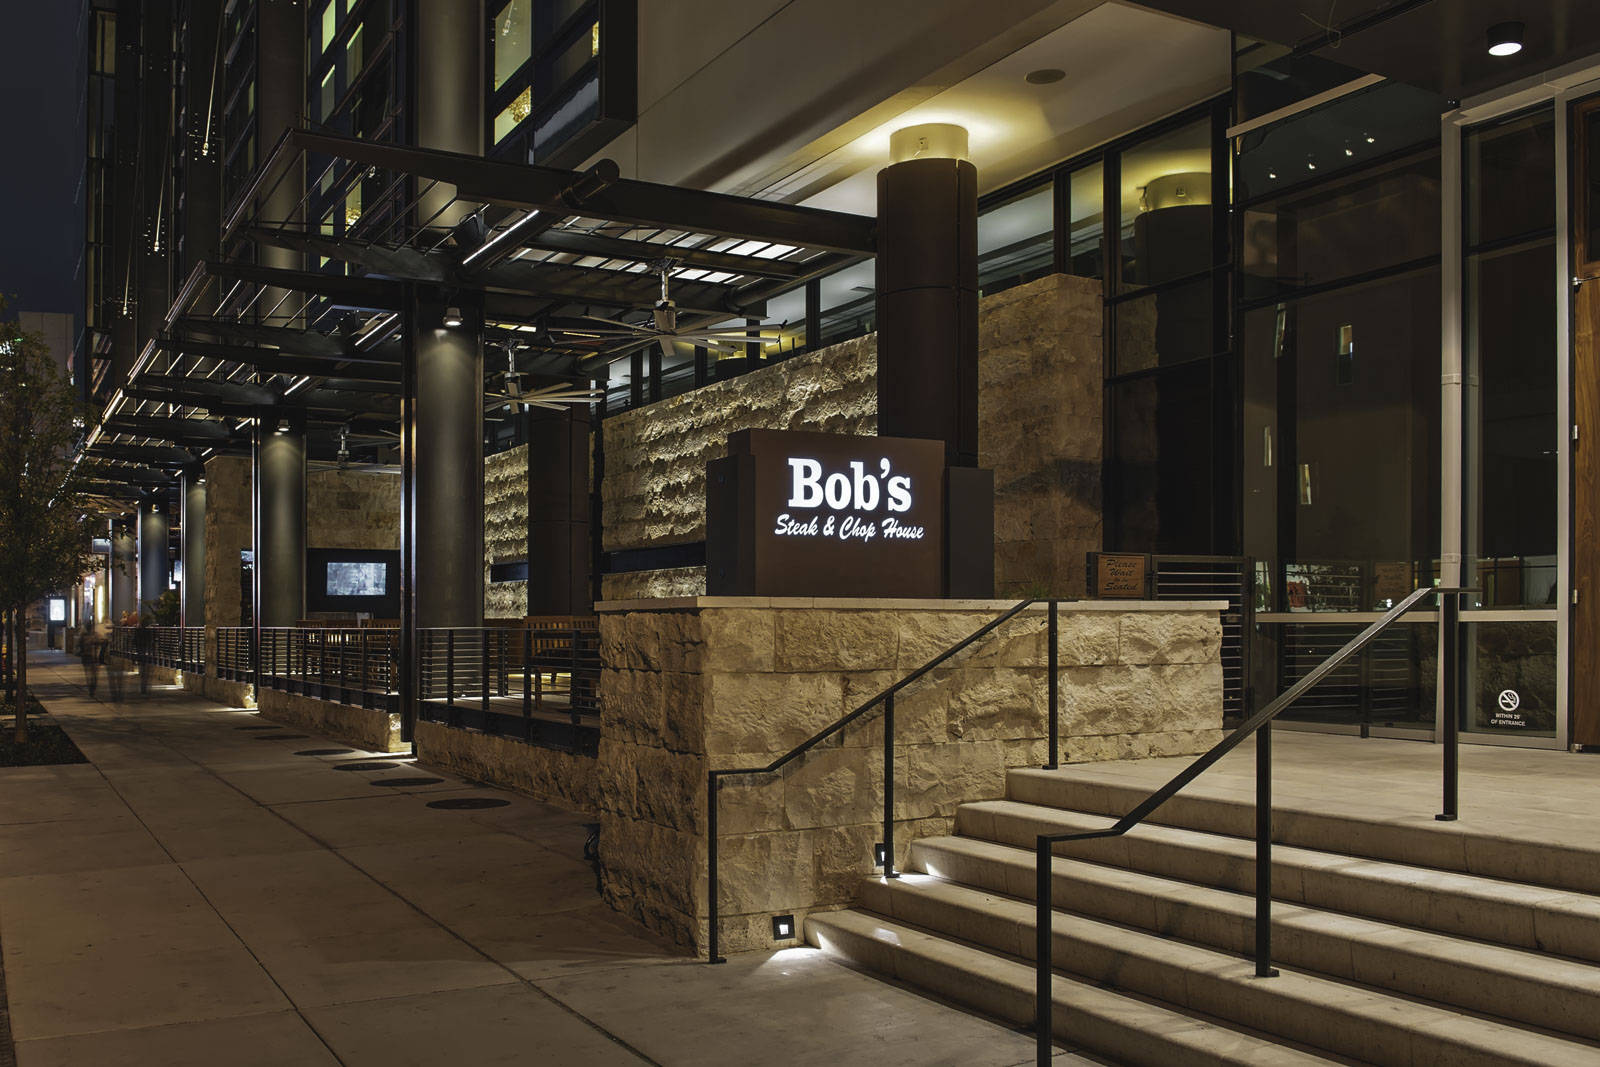 Bob's Steak & Chop House - Nashville, TN (Storefront)